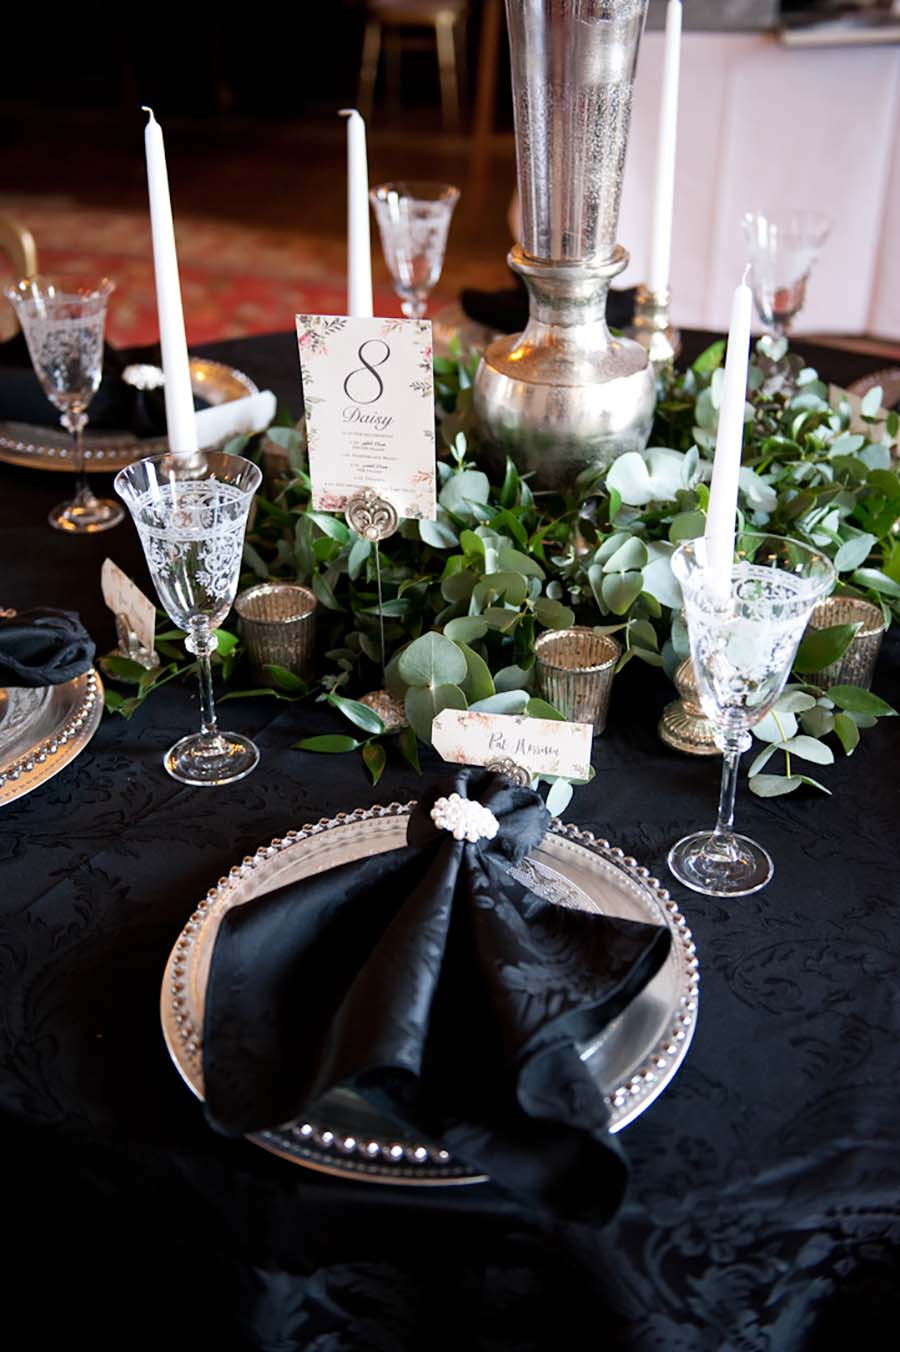 Buckinghams-at-belvoir-castle-wedding-fair-rachael-connerton-photography-121